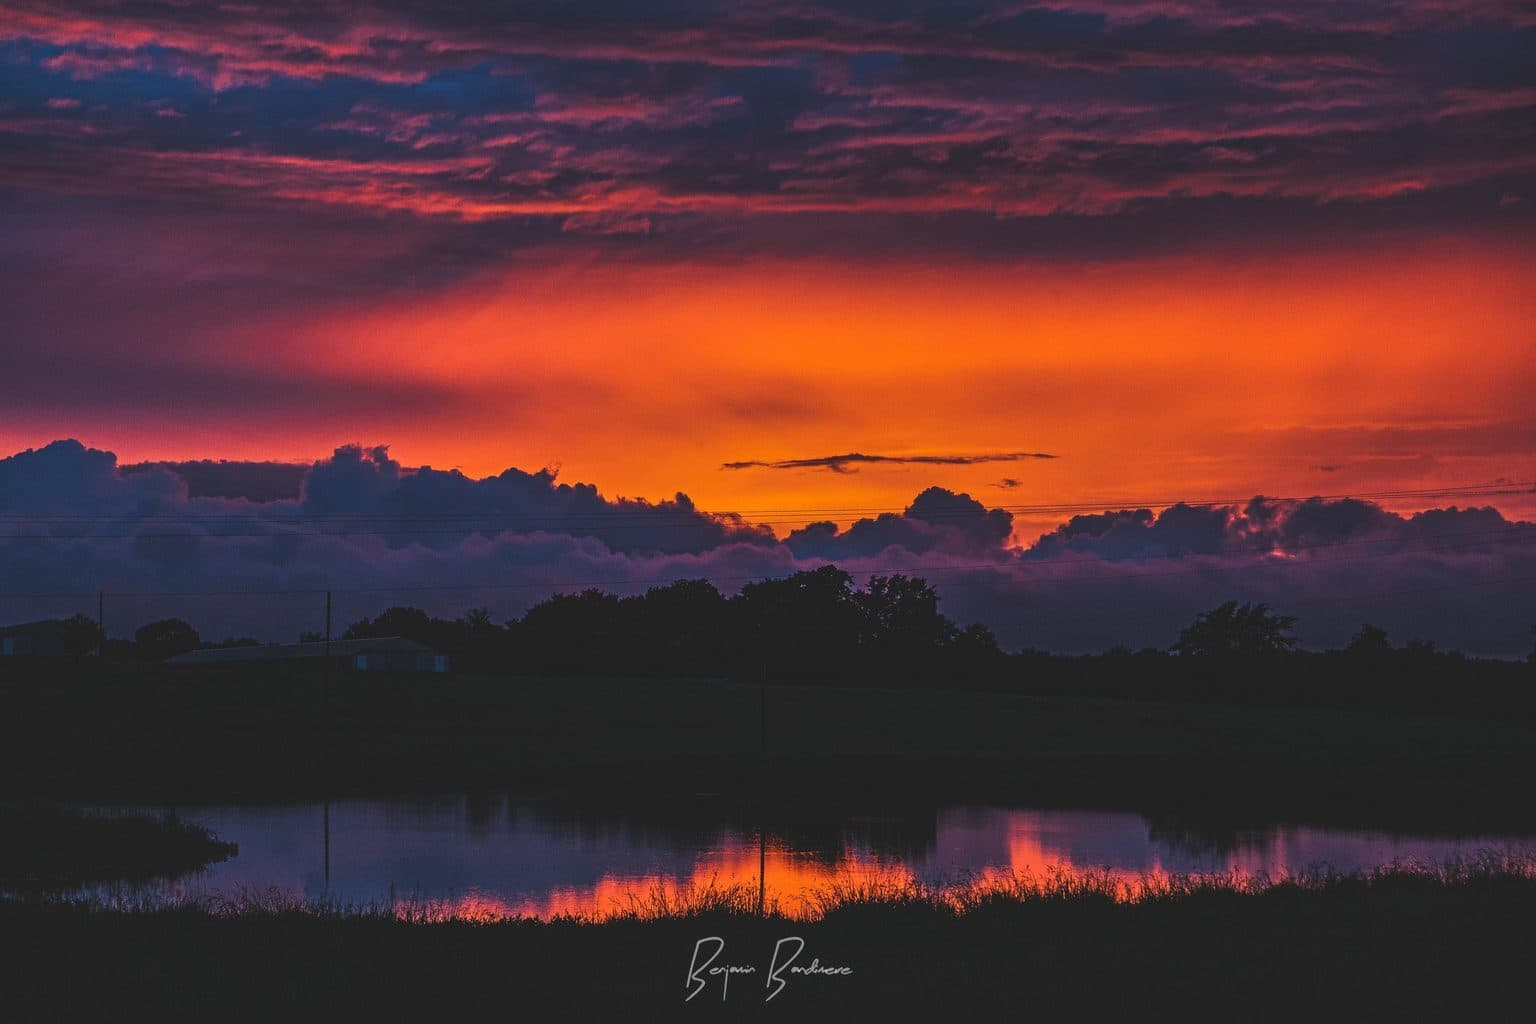 """""""The heavens declare the glory of God; the skies proclaim the work of his hands."""" - Psalm 19:1 Taken after a round of stormy weather moved through the area.  Prints are always available upon request!  Canon 5d Mark II Canon 24-105 F/4L"""